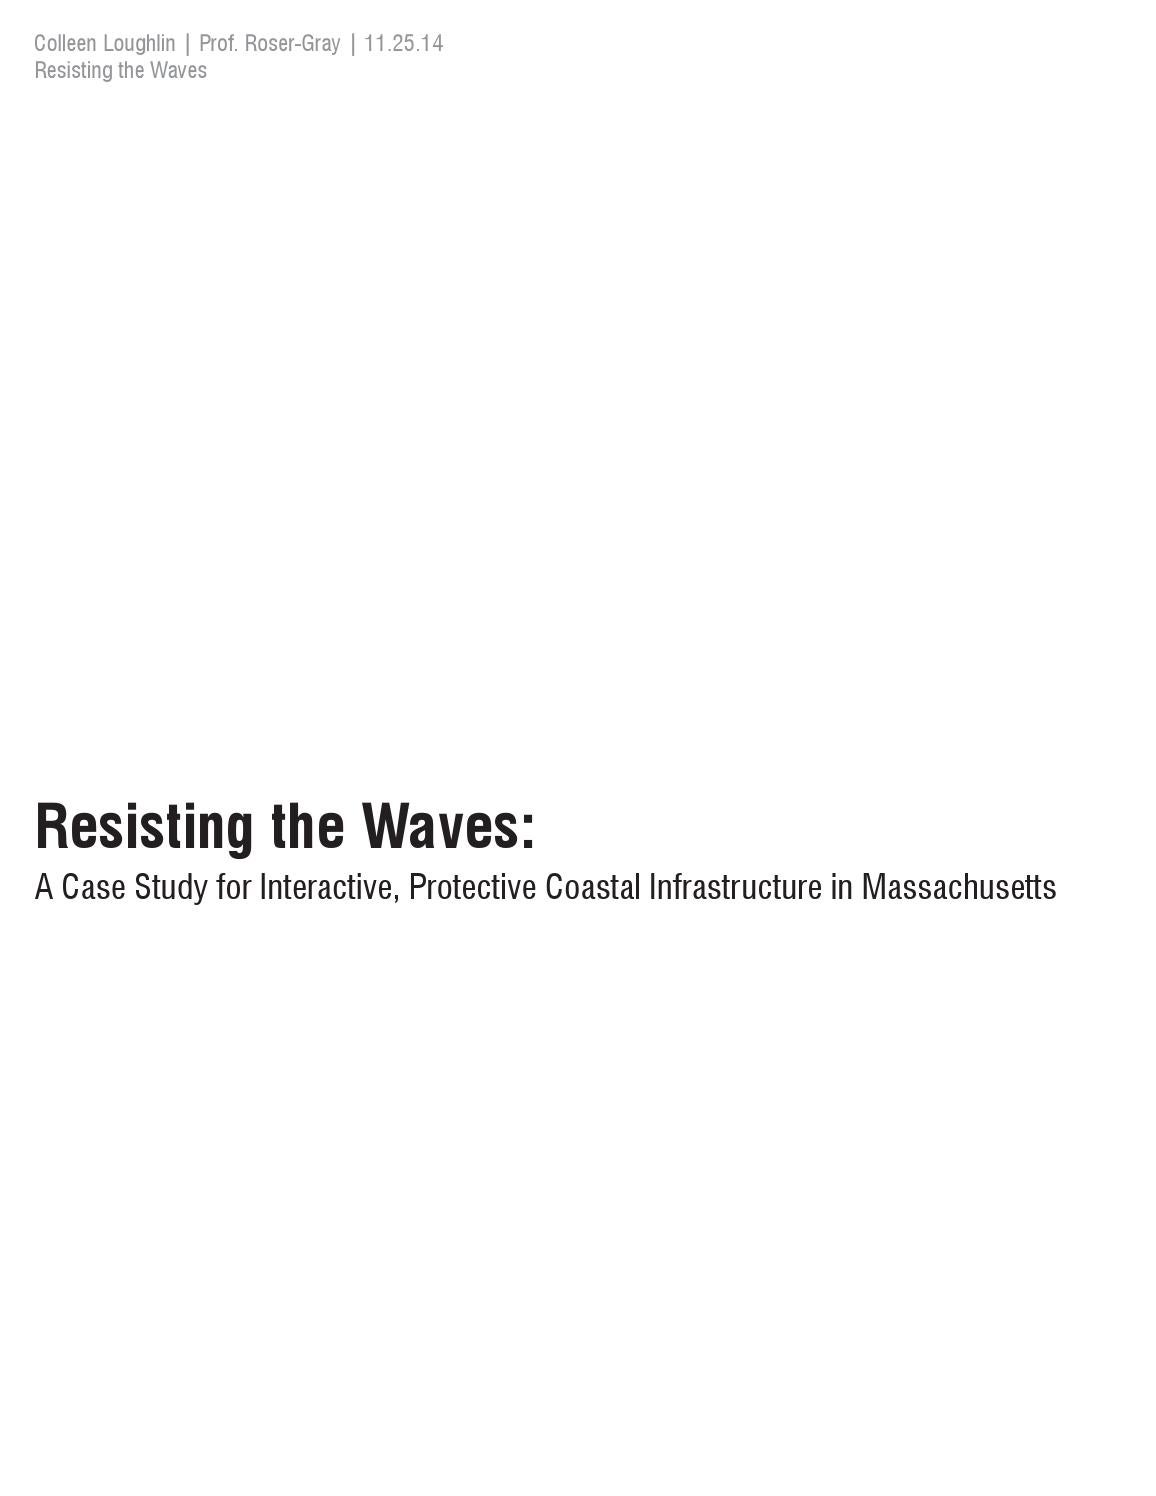 Architectural Thesis Research | Interactive, Protective Coastal ...